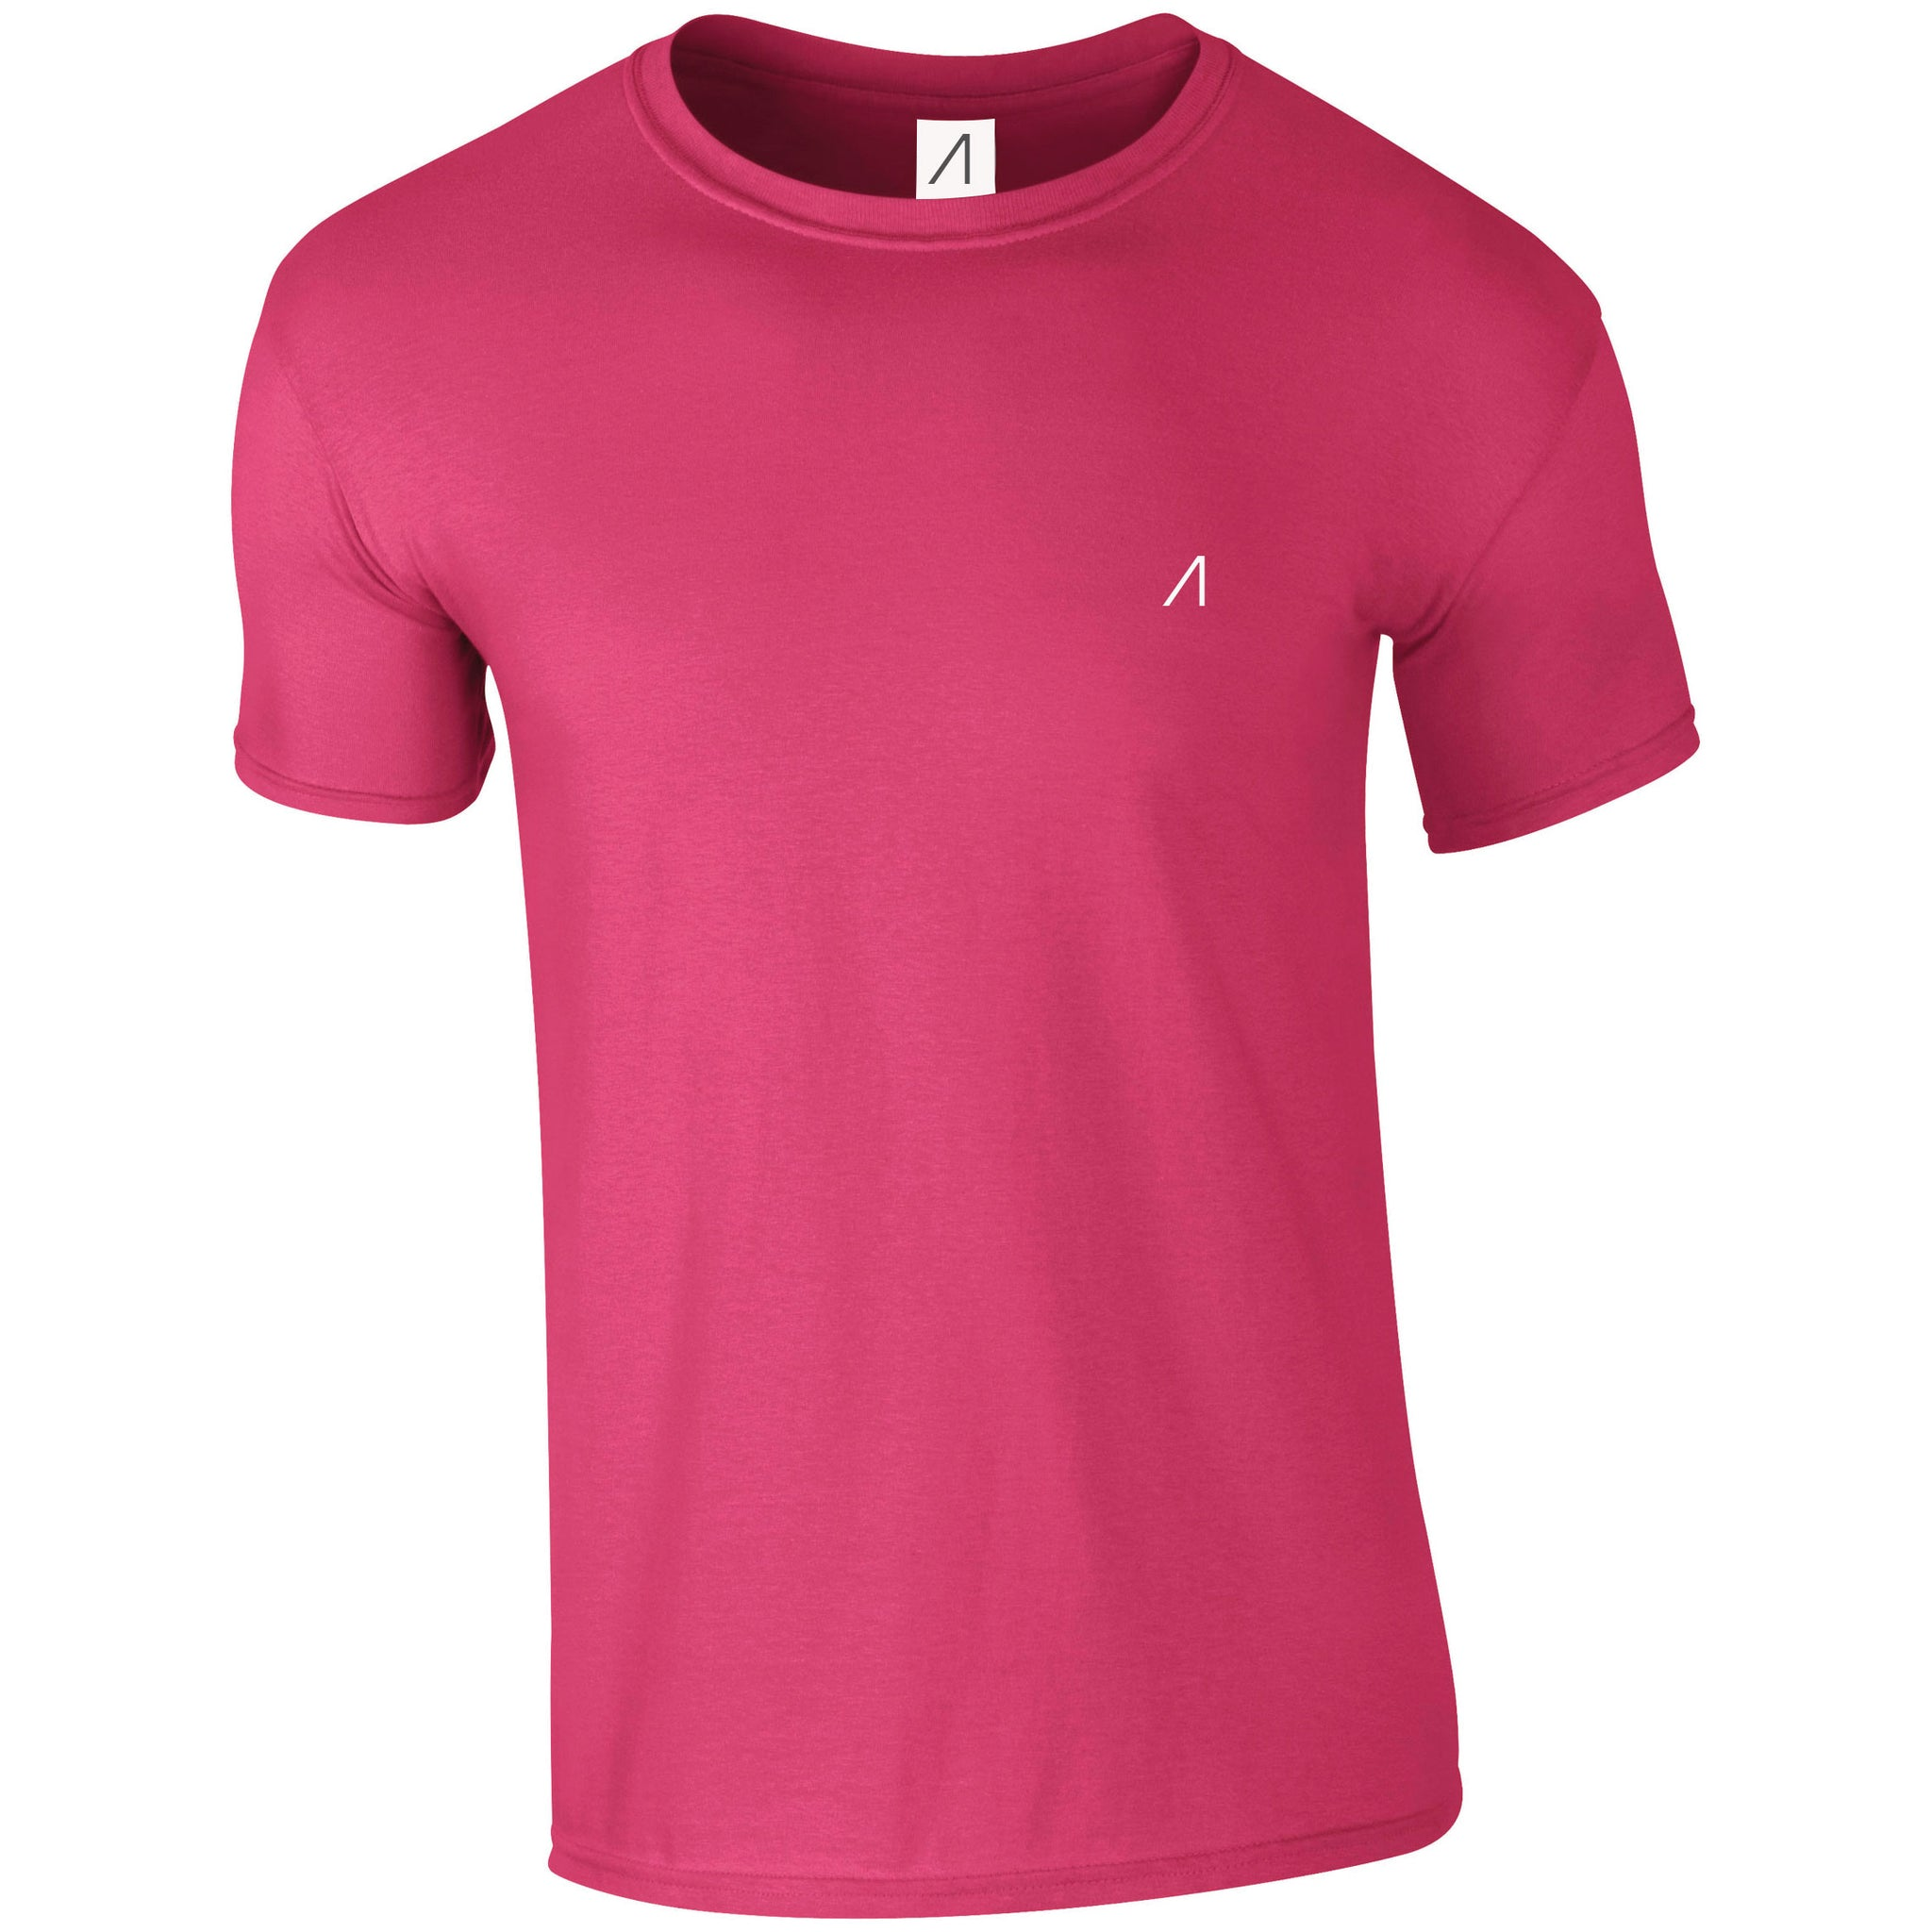 Mens Soft Cotton T-shirt